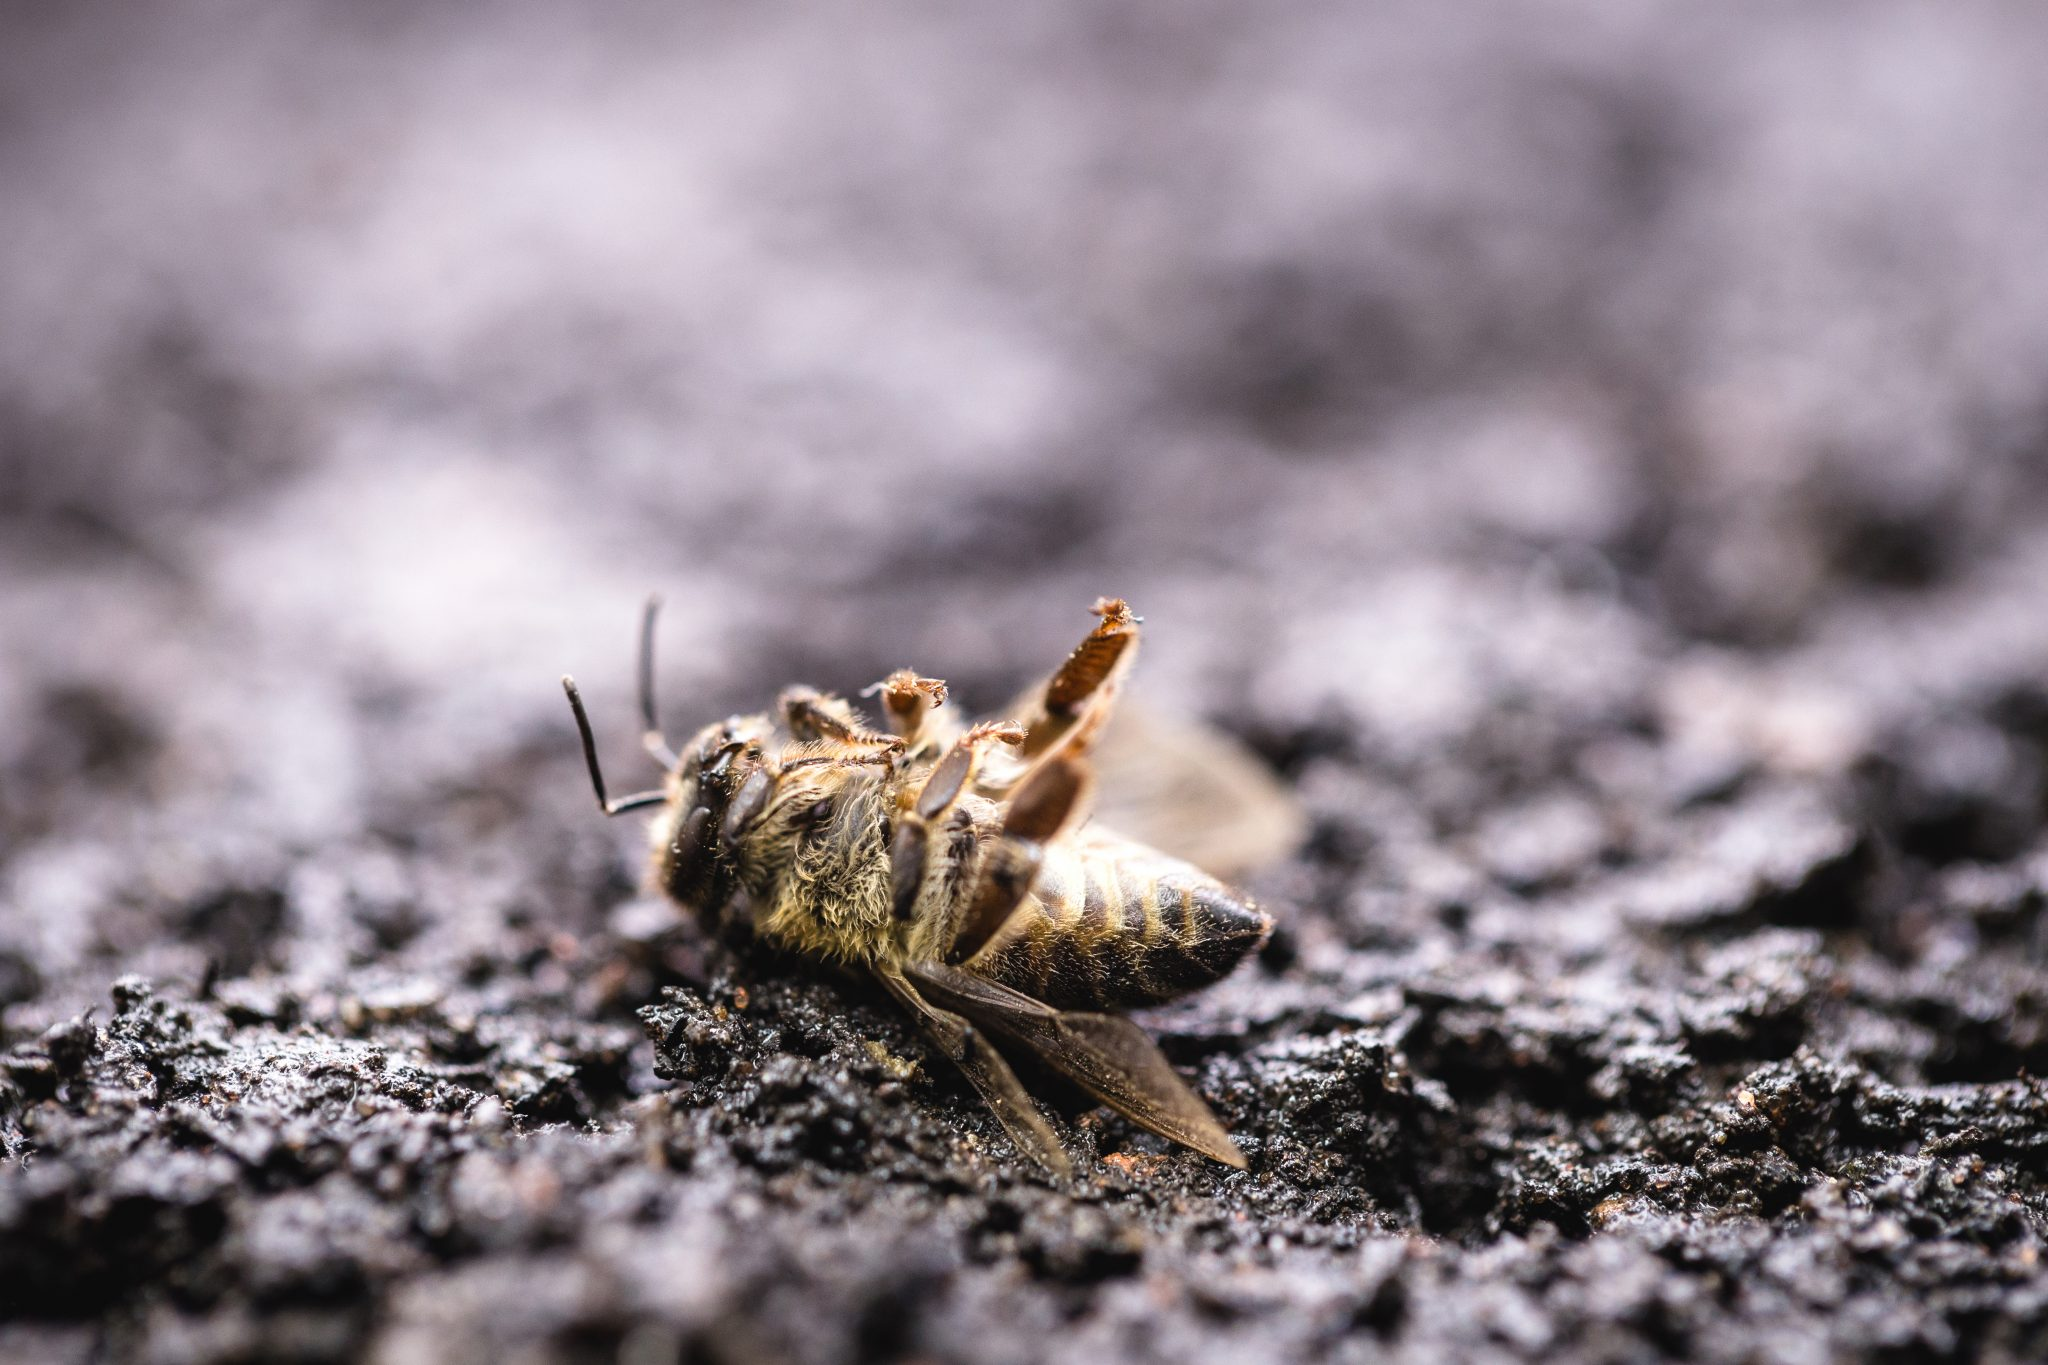 Petition: Tell the EU to Ban Neonicotinoids, Pesticides that Kill Bees